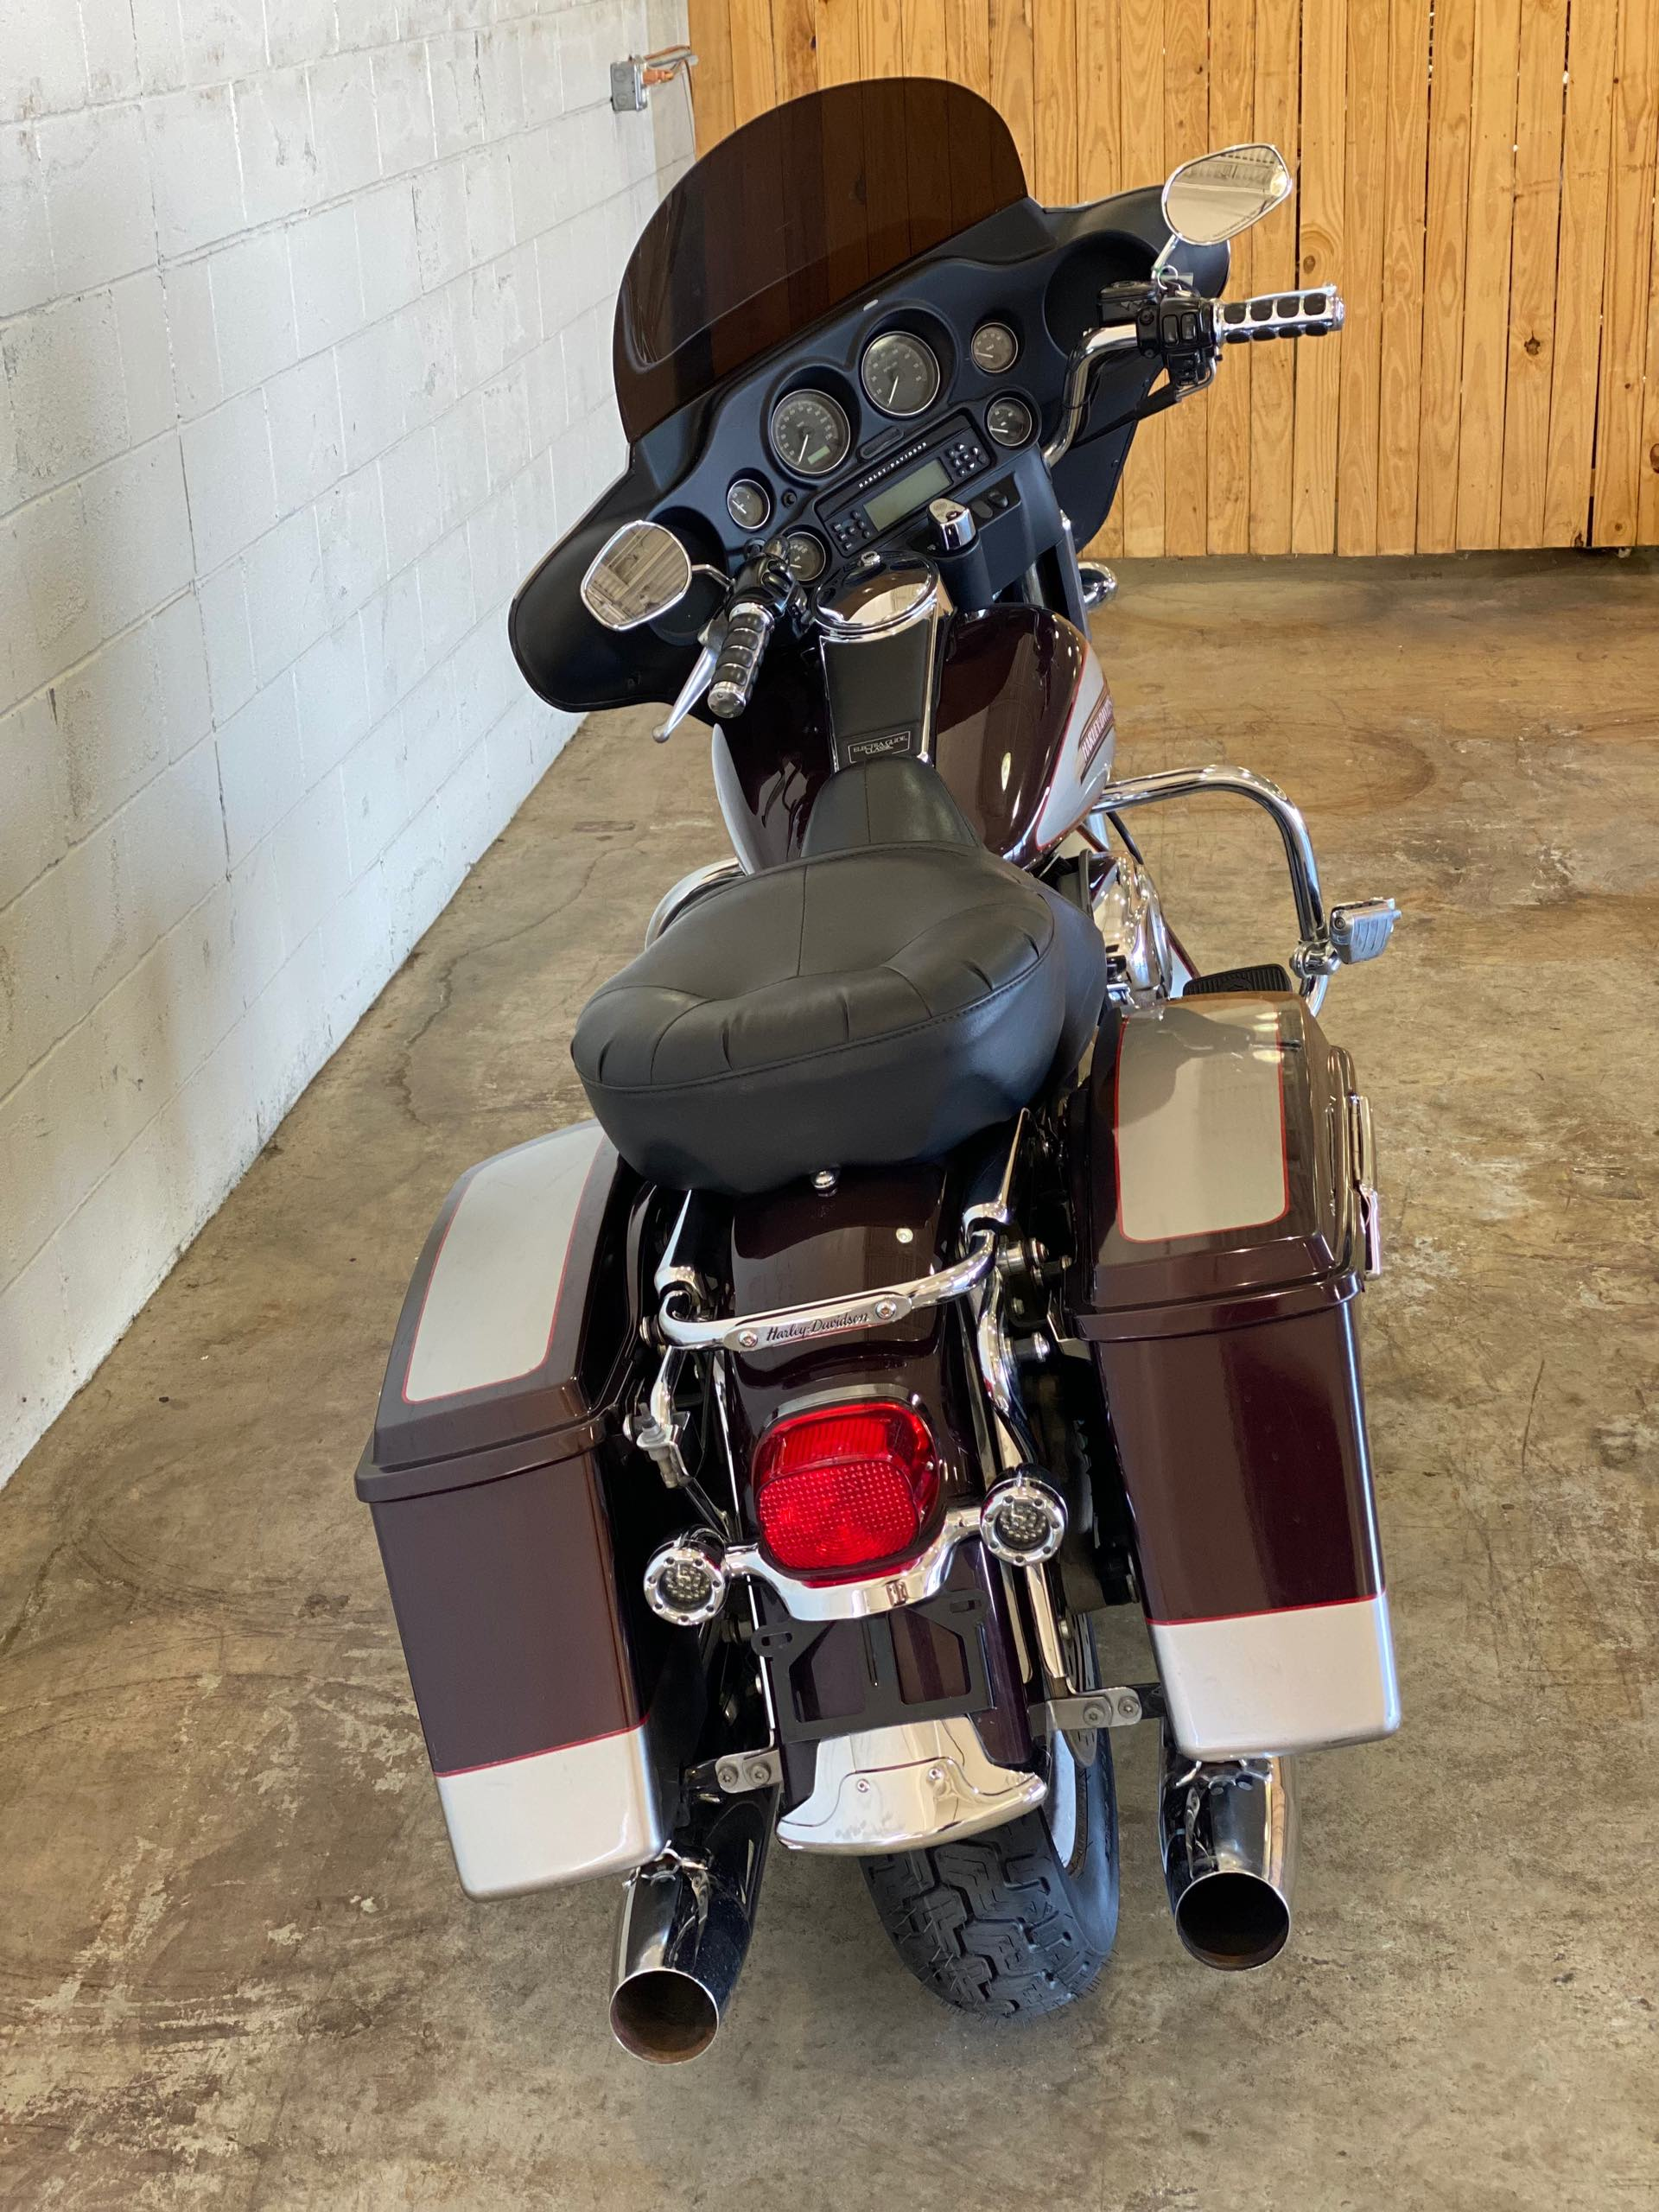 2007 Harley-Davidson Electra Glide Classic at Twisted Cycles